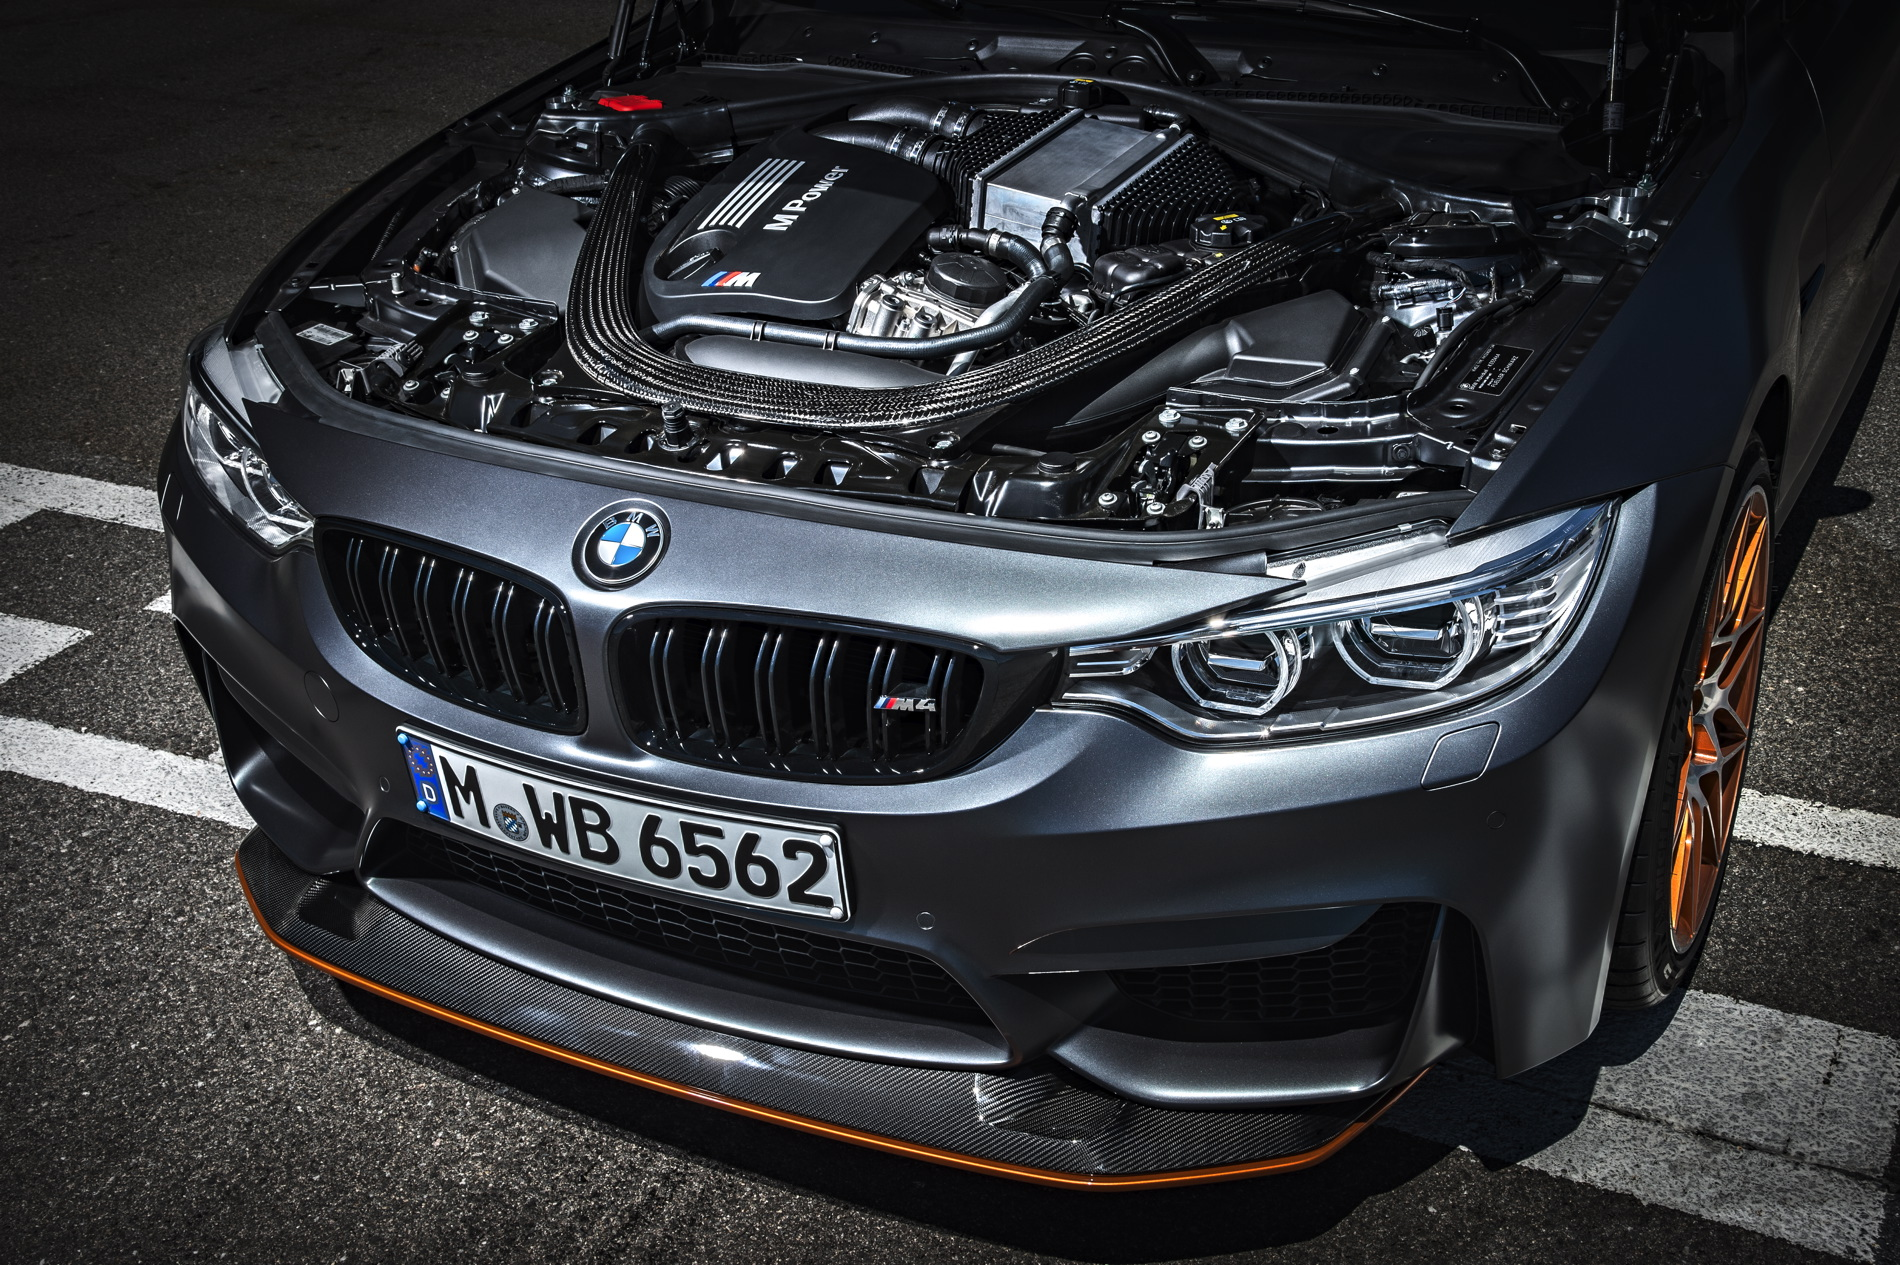 BMW M4 GTS 493hp 3.0L Turbo Six Photo: bmwblog